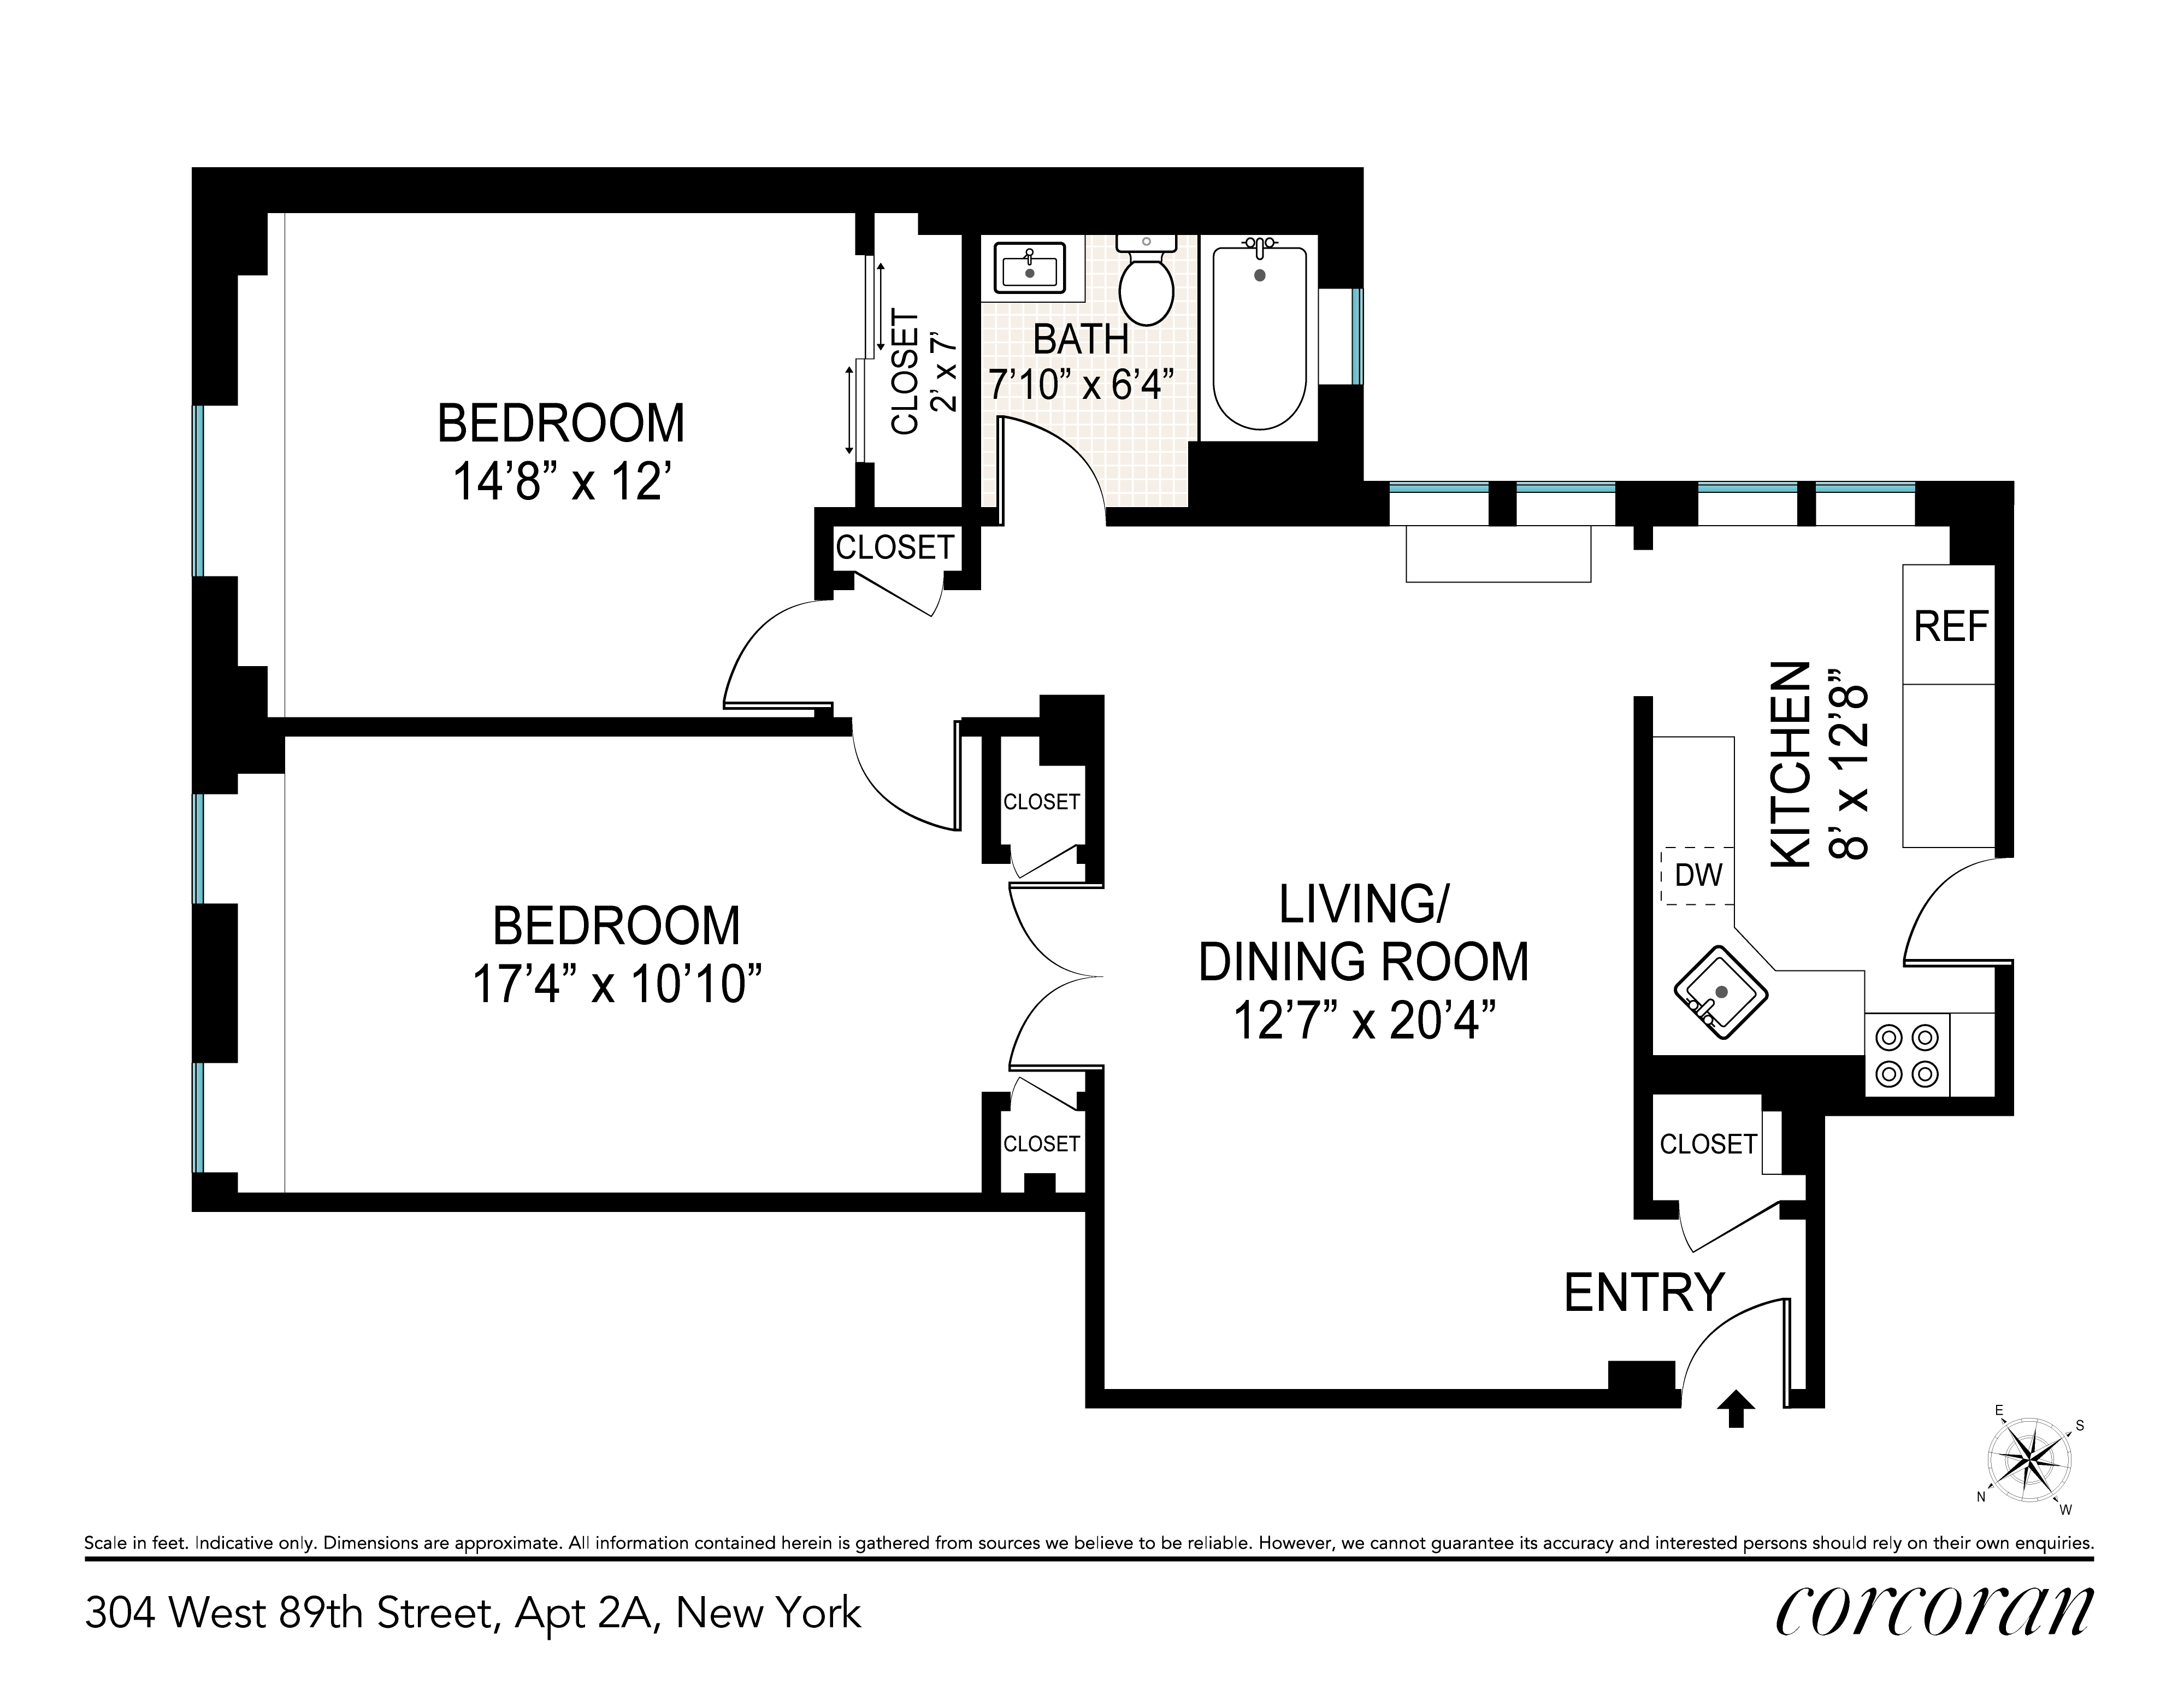 304 West 89th Street Upper West Side New York NY 10024